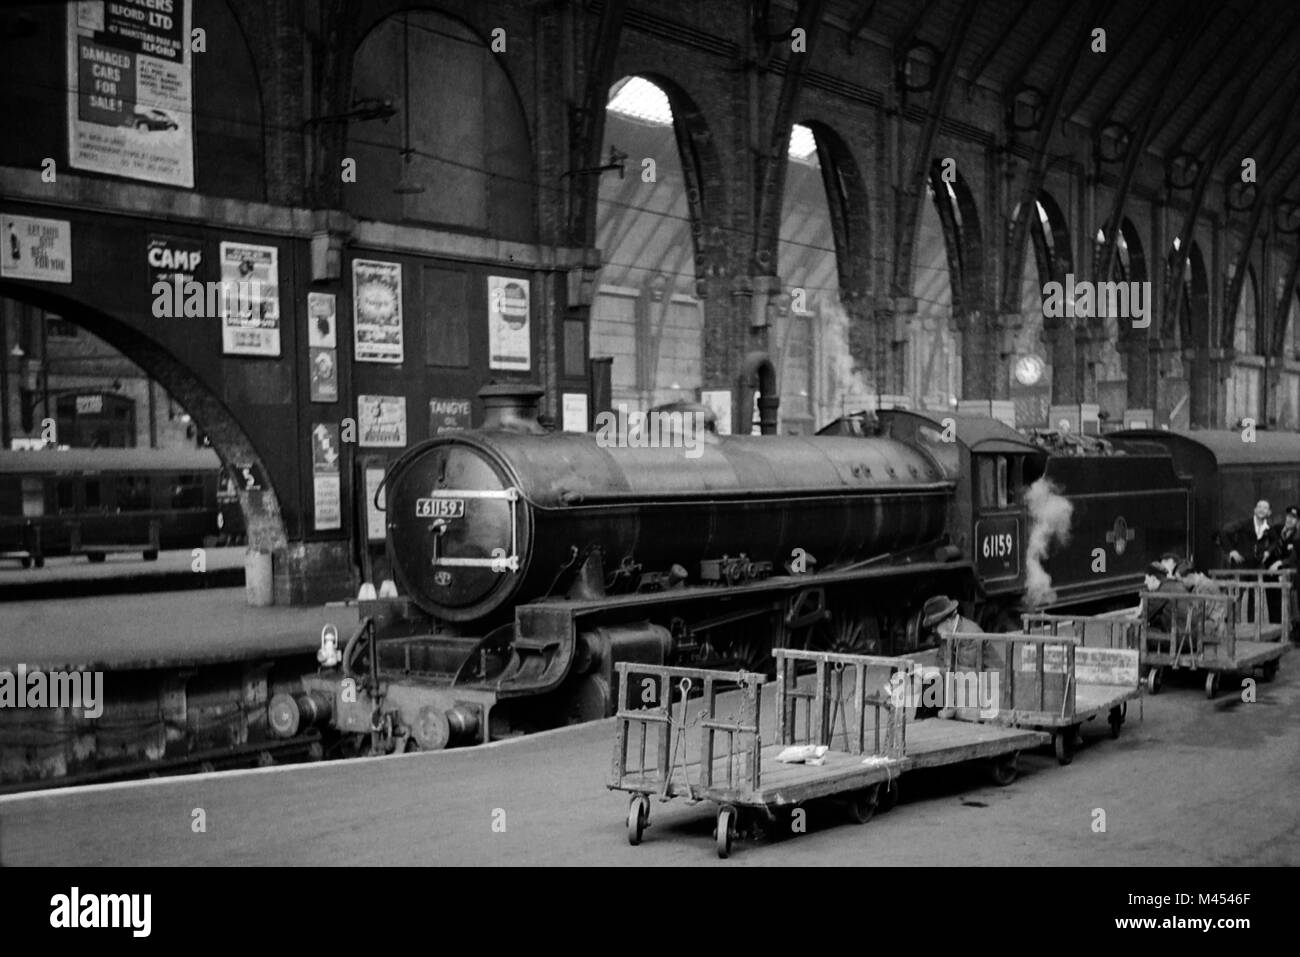 No. 61159 was an LNER Class B1 4-6-0 Designed by Thompson and built in 1947 at the Vulcan Foundry. Withdrawn from Stock Photo